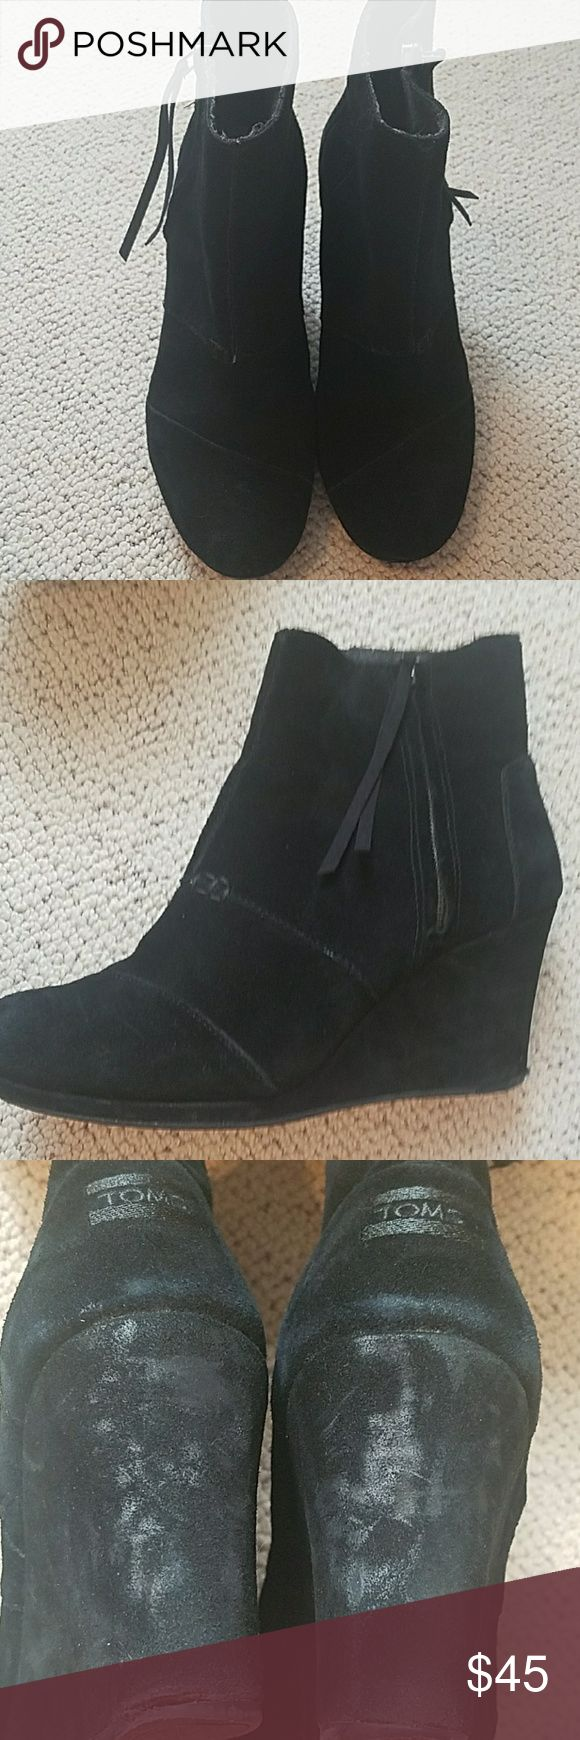 TOMS Desert Wedge Boots TOMS High Desert Wedge Boots in black suede. TOMS Shoes Ankle Boots & Booties